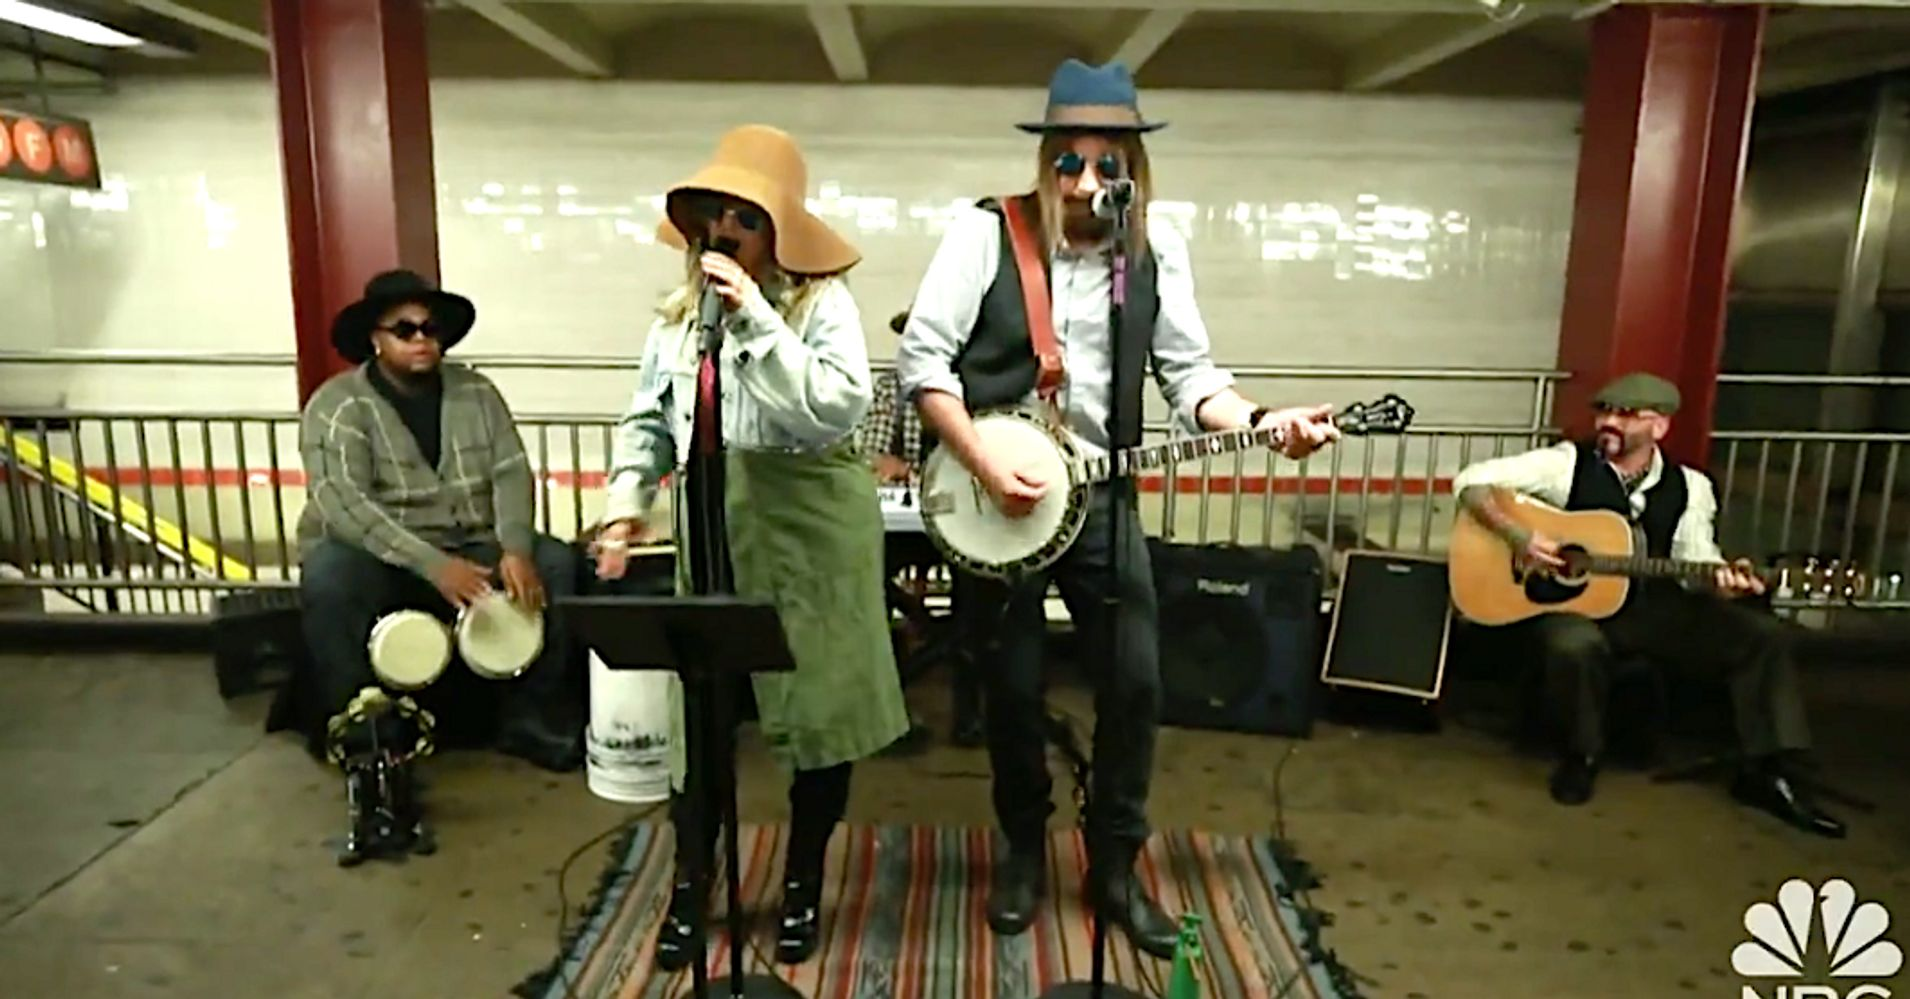 Disguised Christina Aguilera And Jimmy Fallon Sing In New York Subway